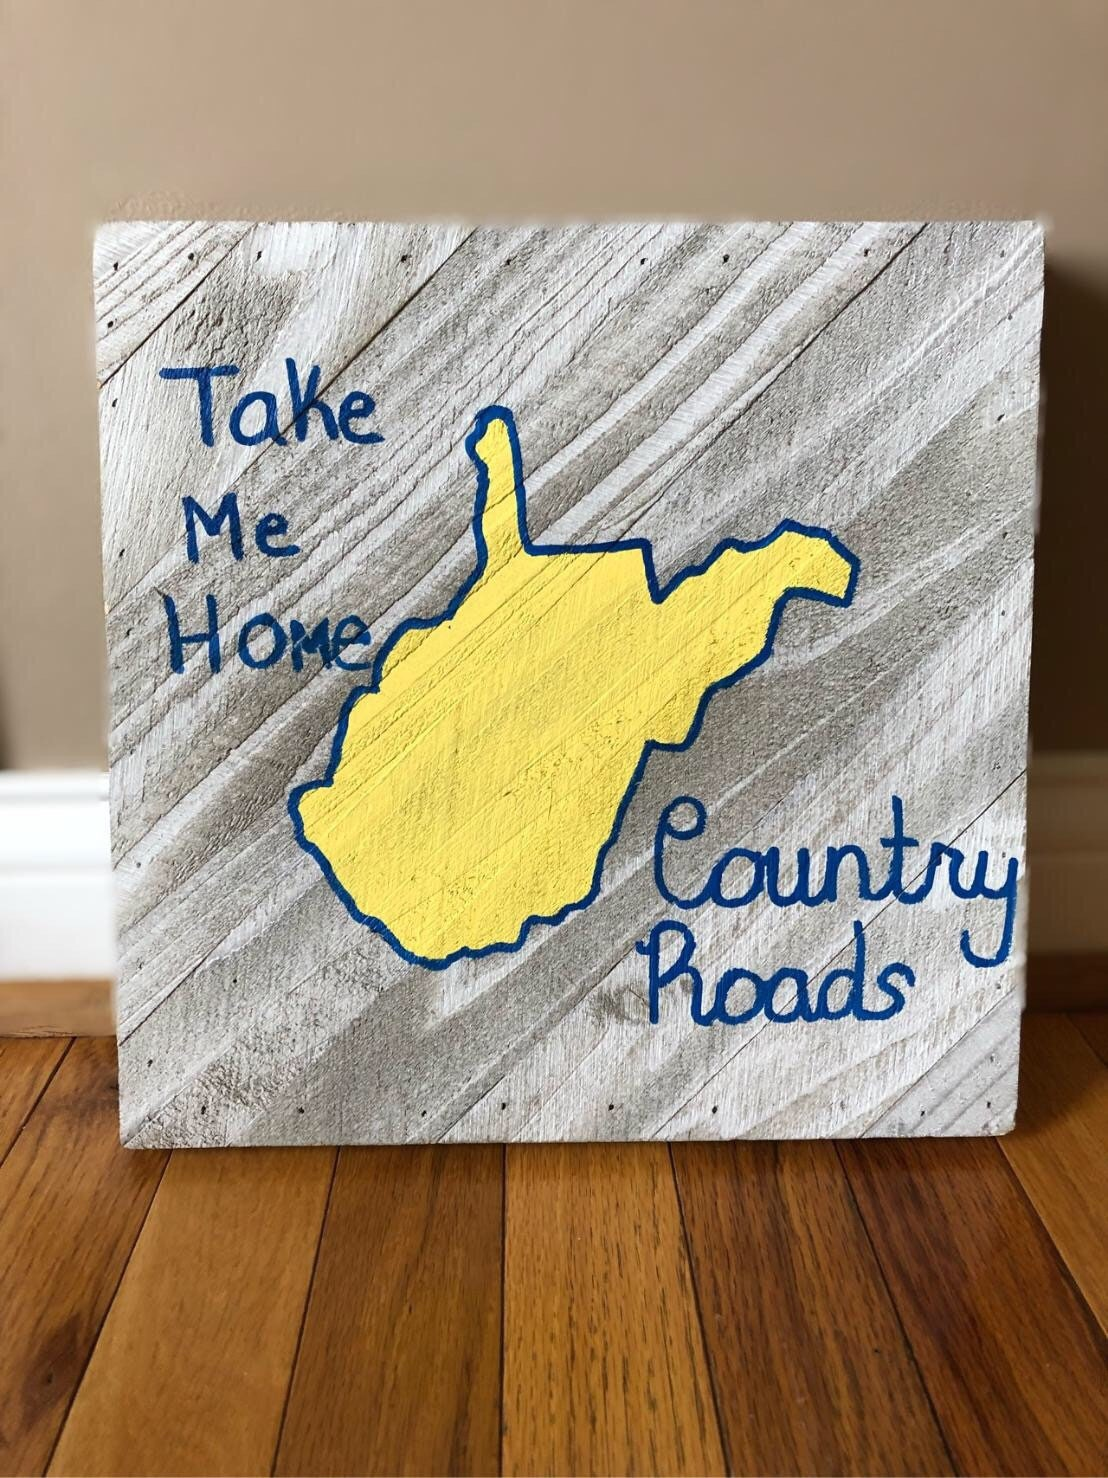 Take me home country roads wooden wall sign wall decor WVU | Etsy